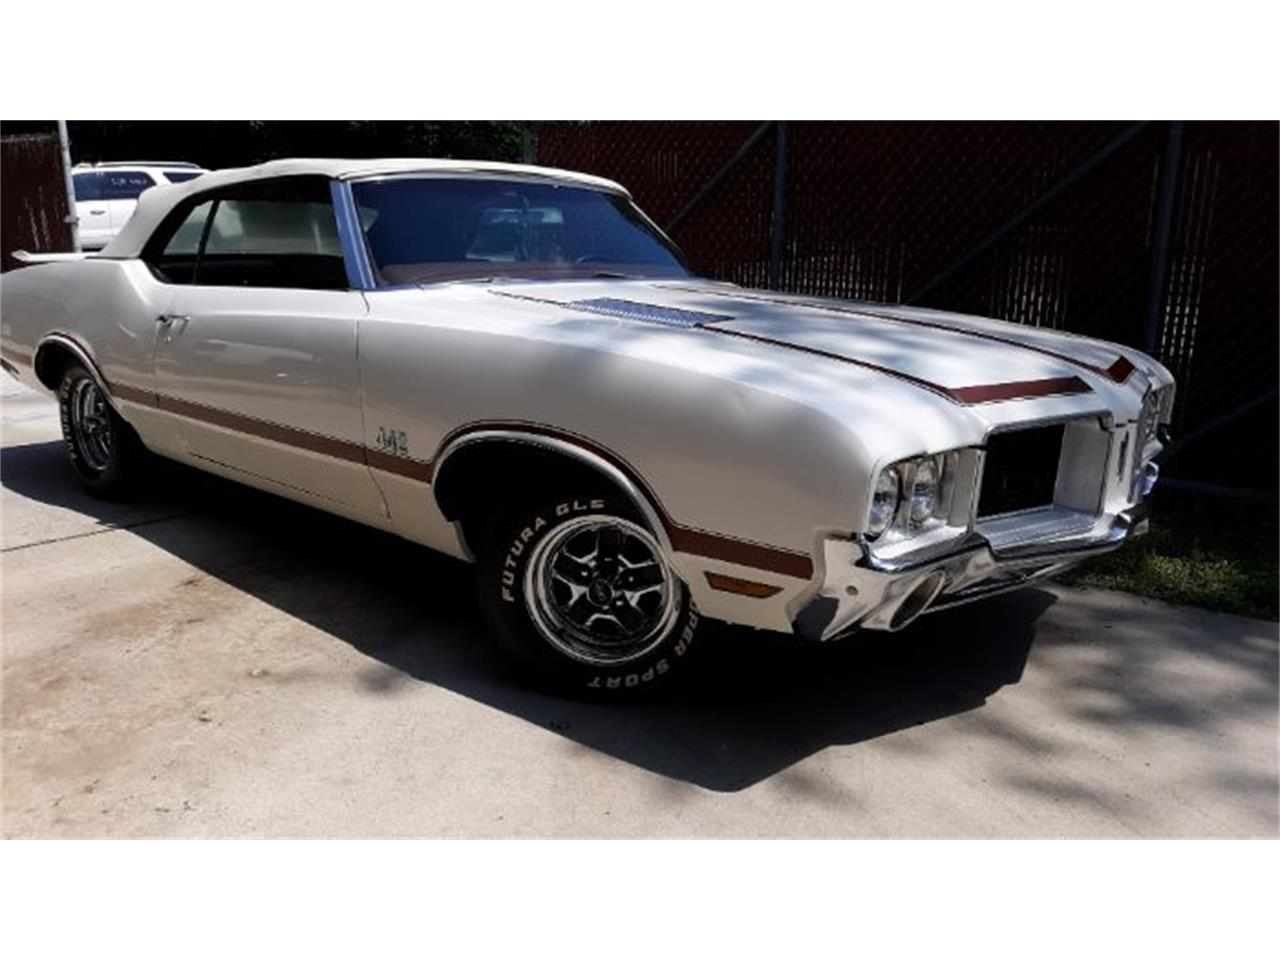 Large Picture of Classic 1971 Cutlass located in Michigan Offered by Classic Car Deals - Q4AH